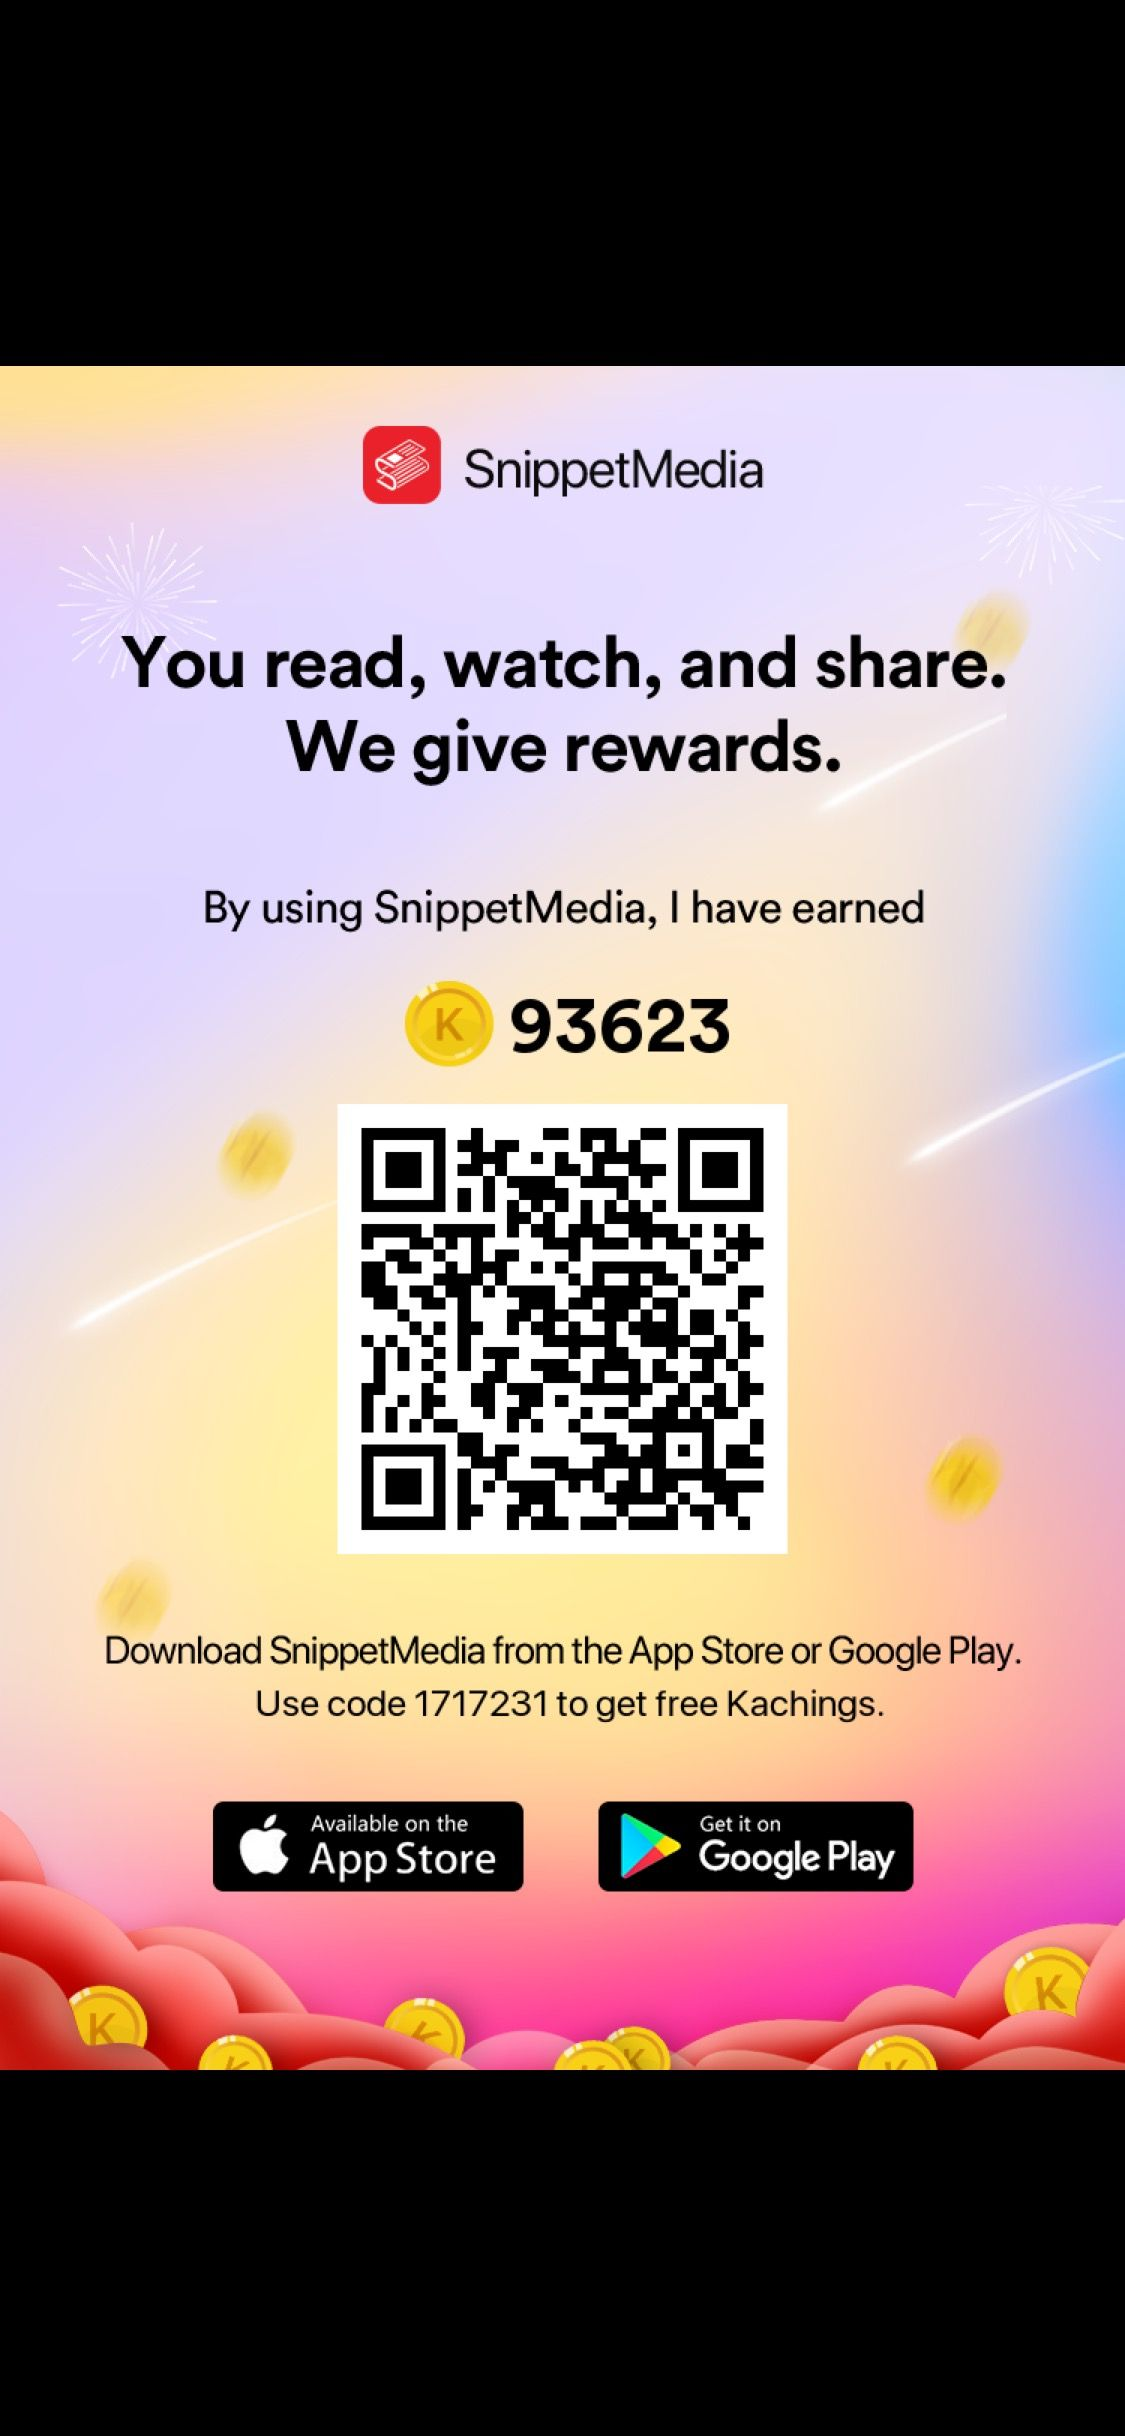 How To Earn Money In Snippetmedia